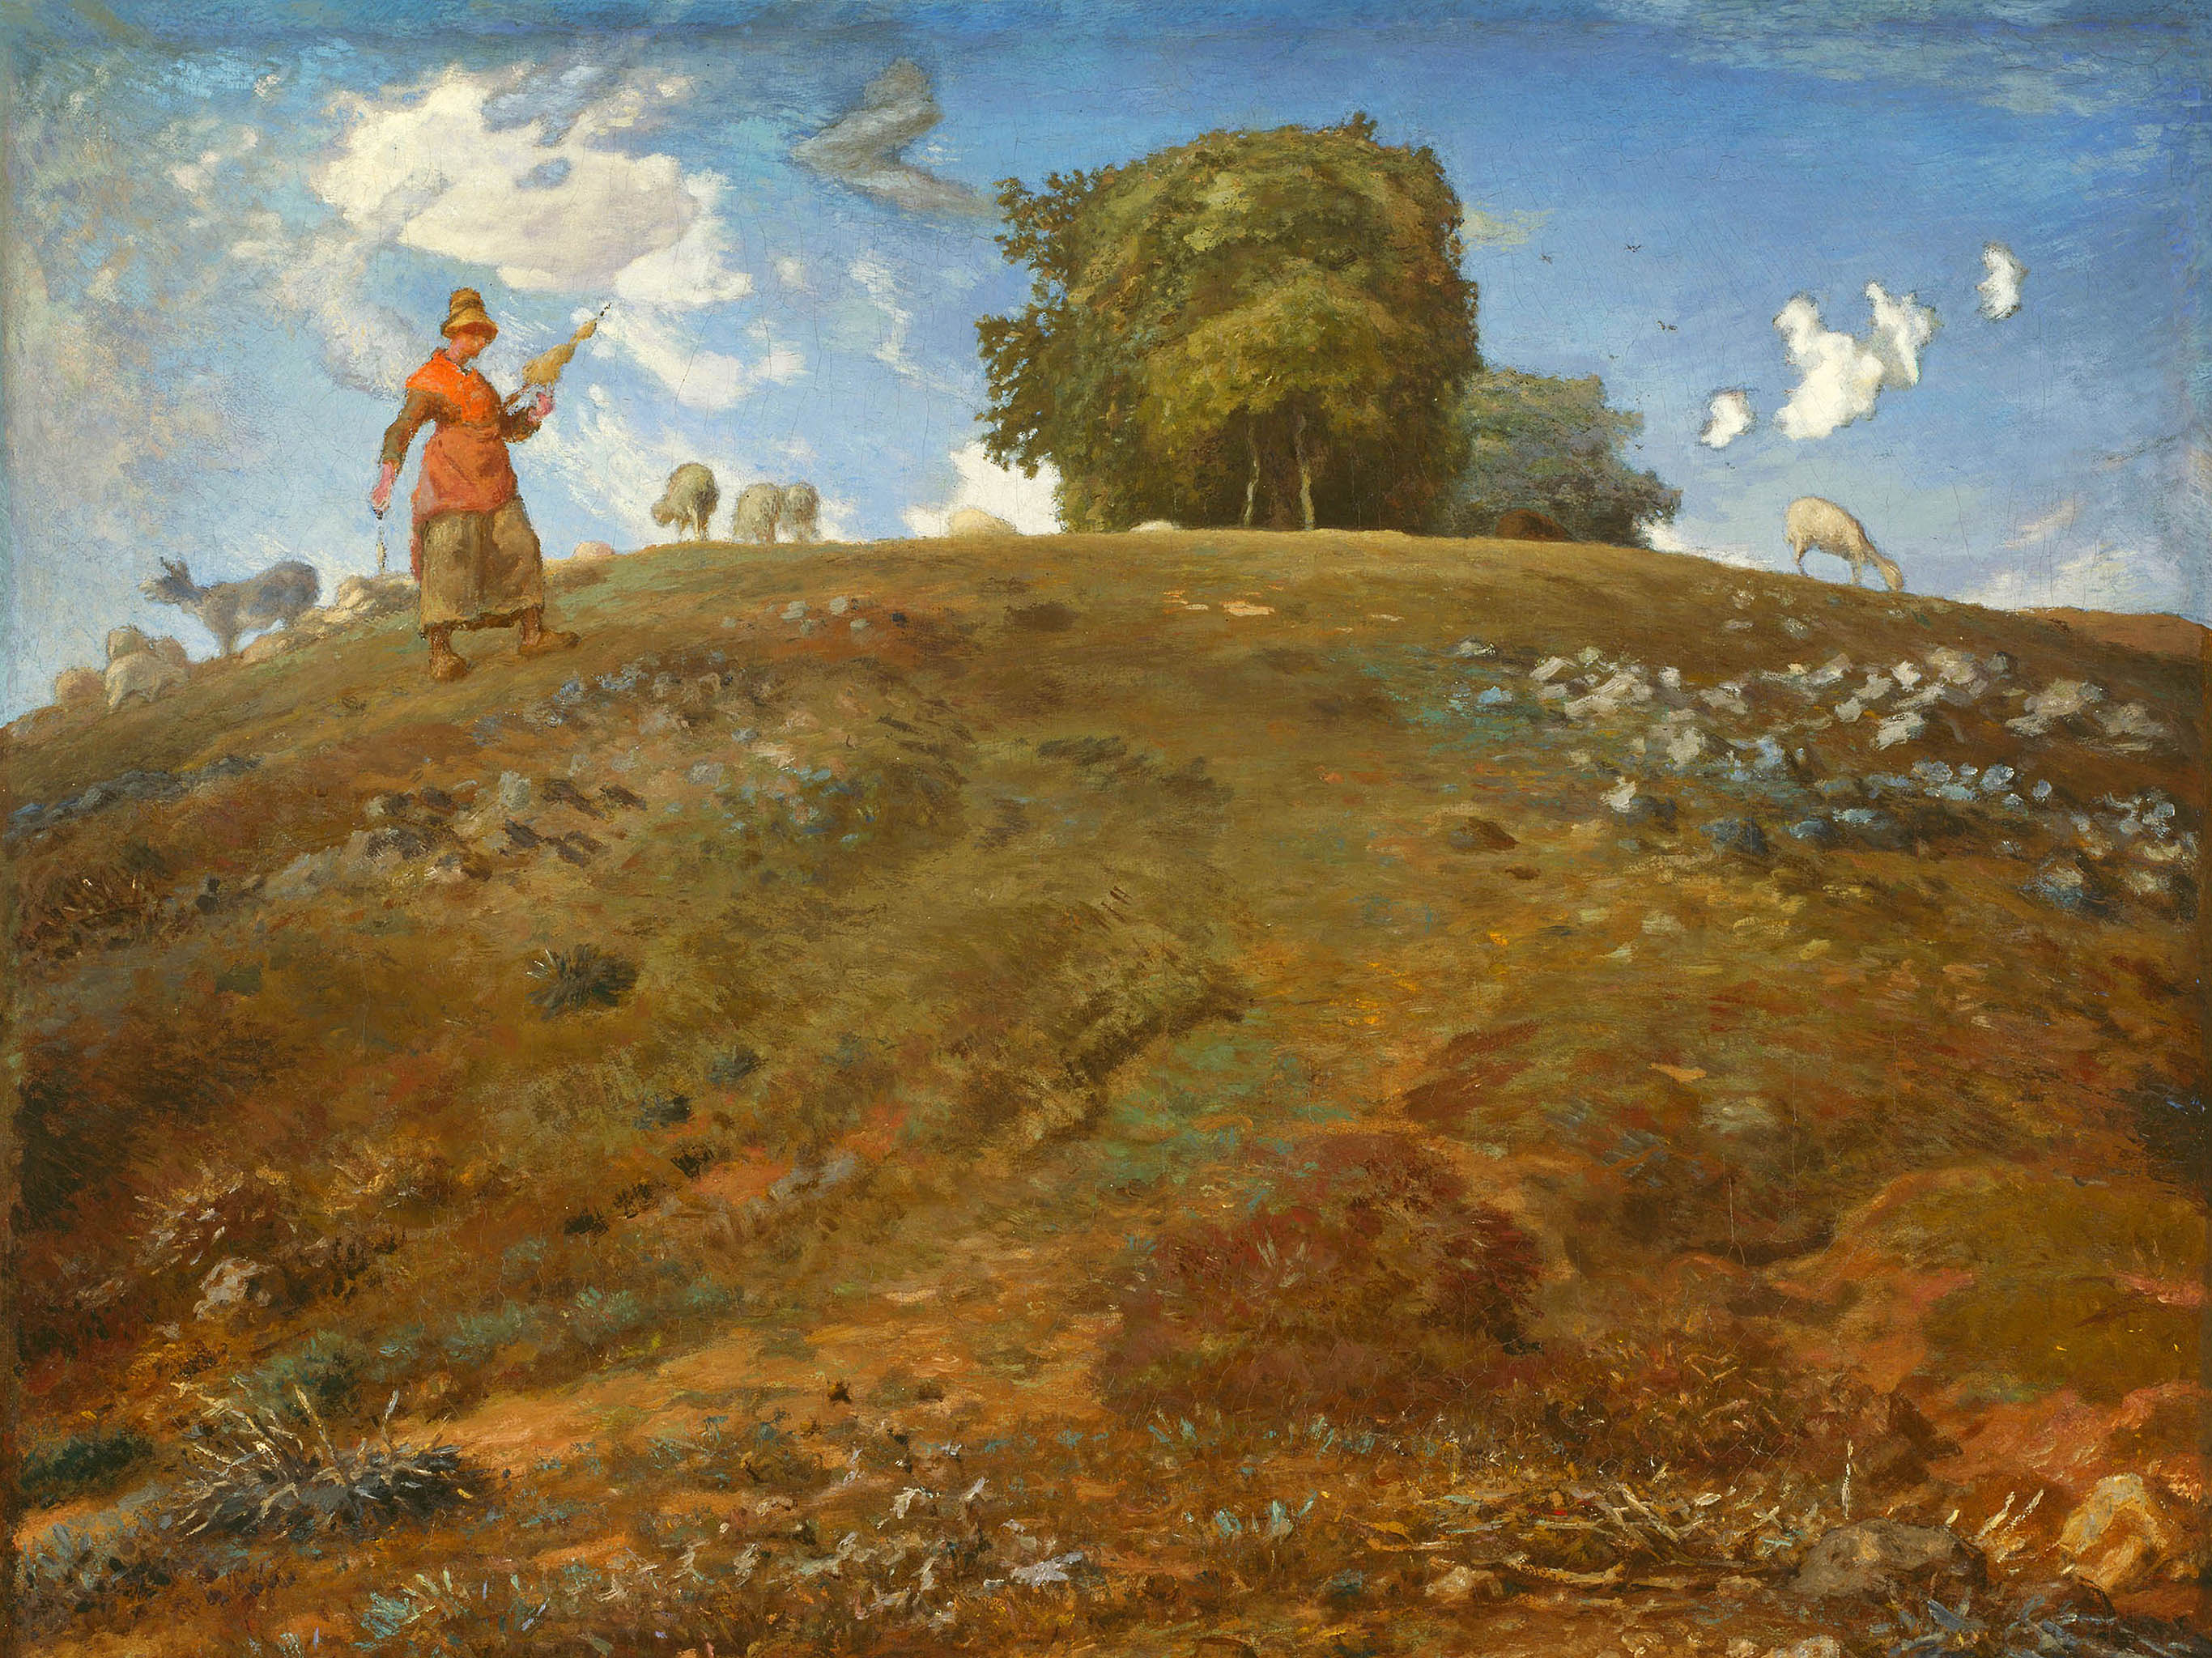 Jean-François Millet - In the auvergne 2732x2048